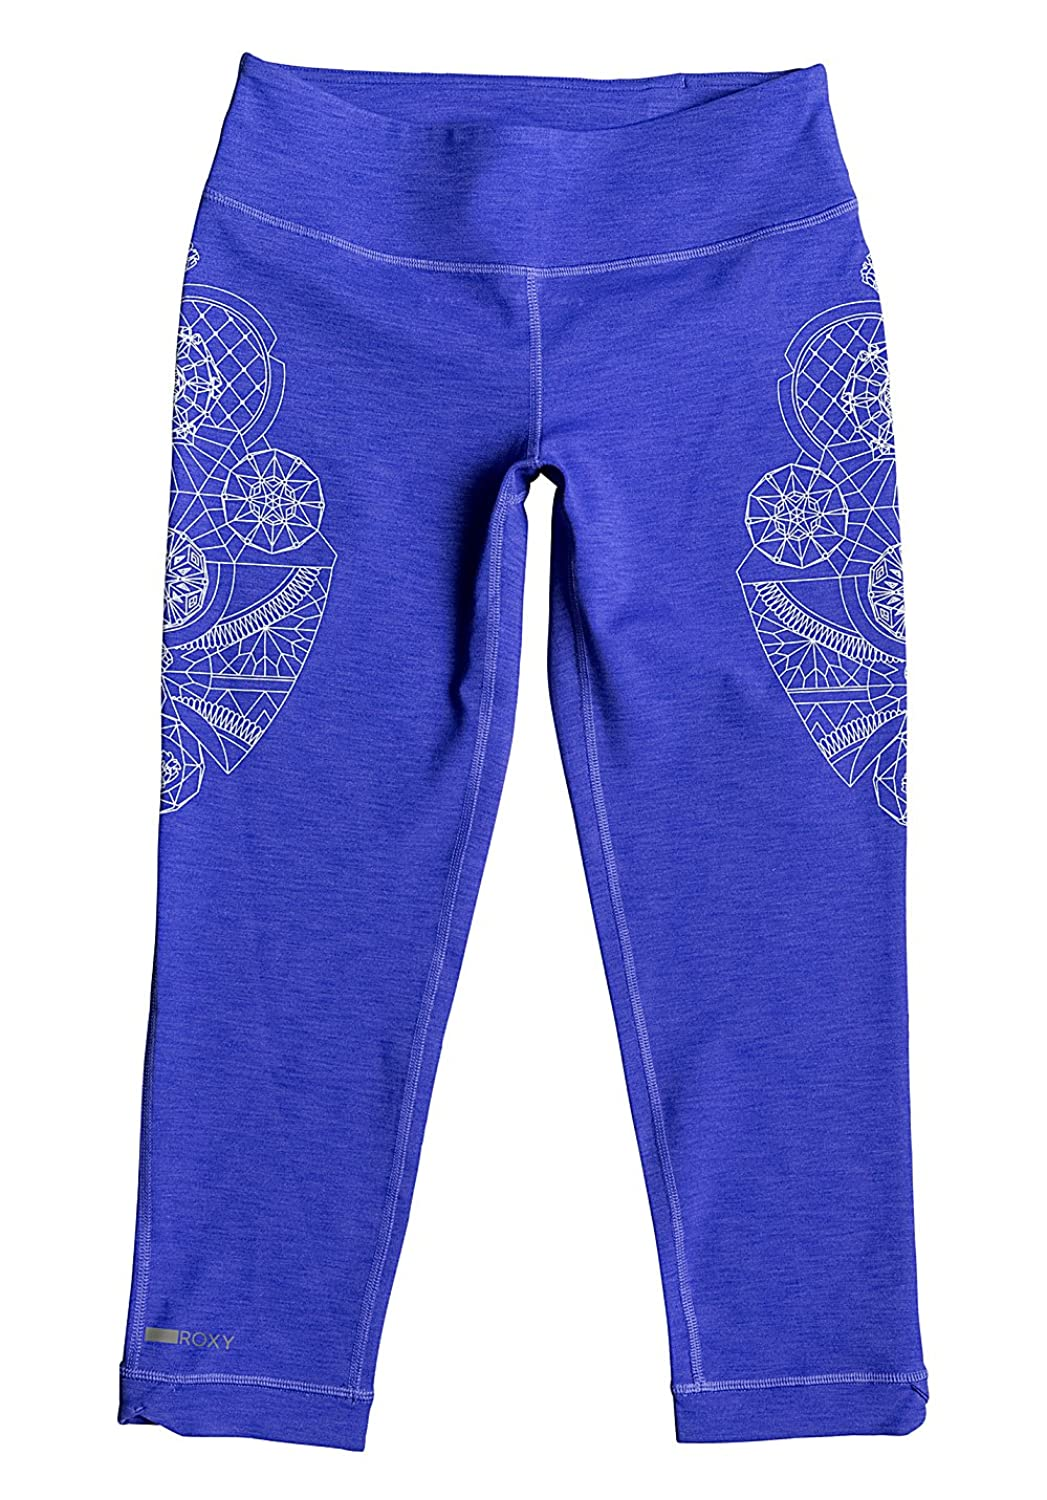 Damen Jogginghose Roxy Hampi Capri Jogging Pants